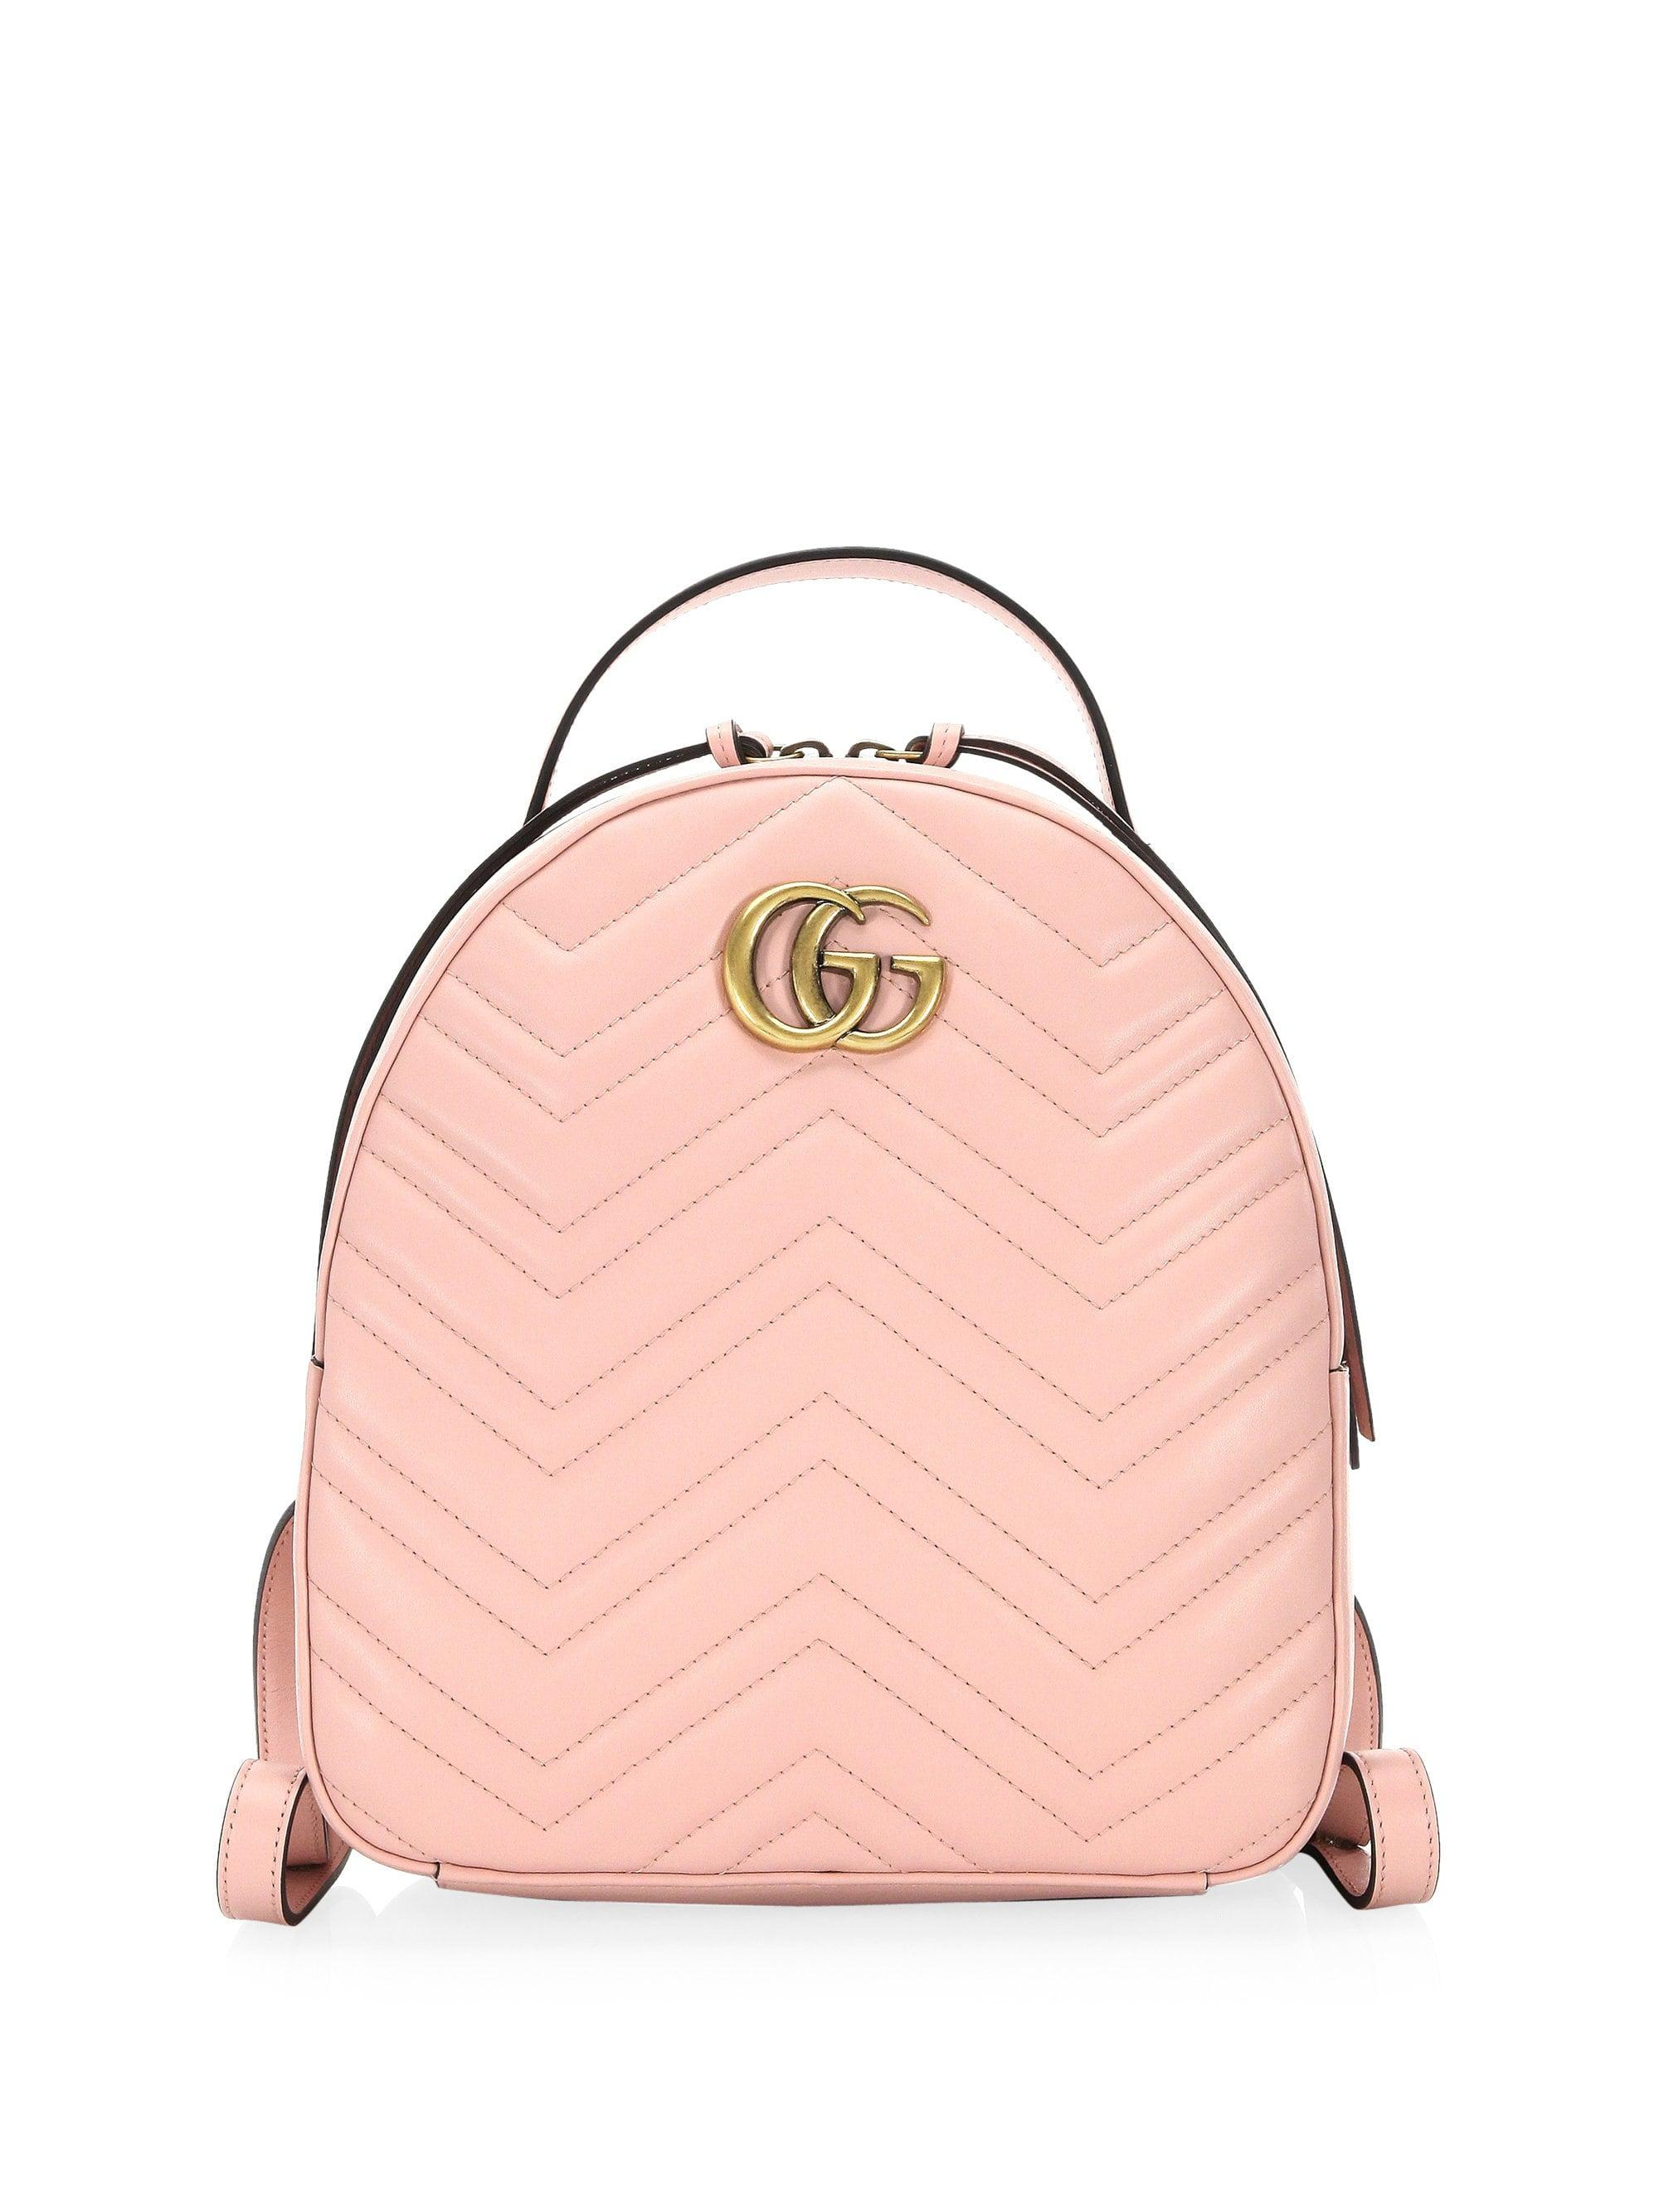 b45c70c603e9 Gucci Women s GG Marmont Chevron Quilted Leather Mini Backpack ...